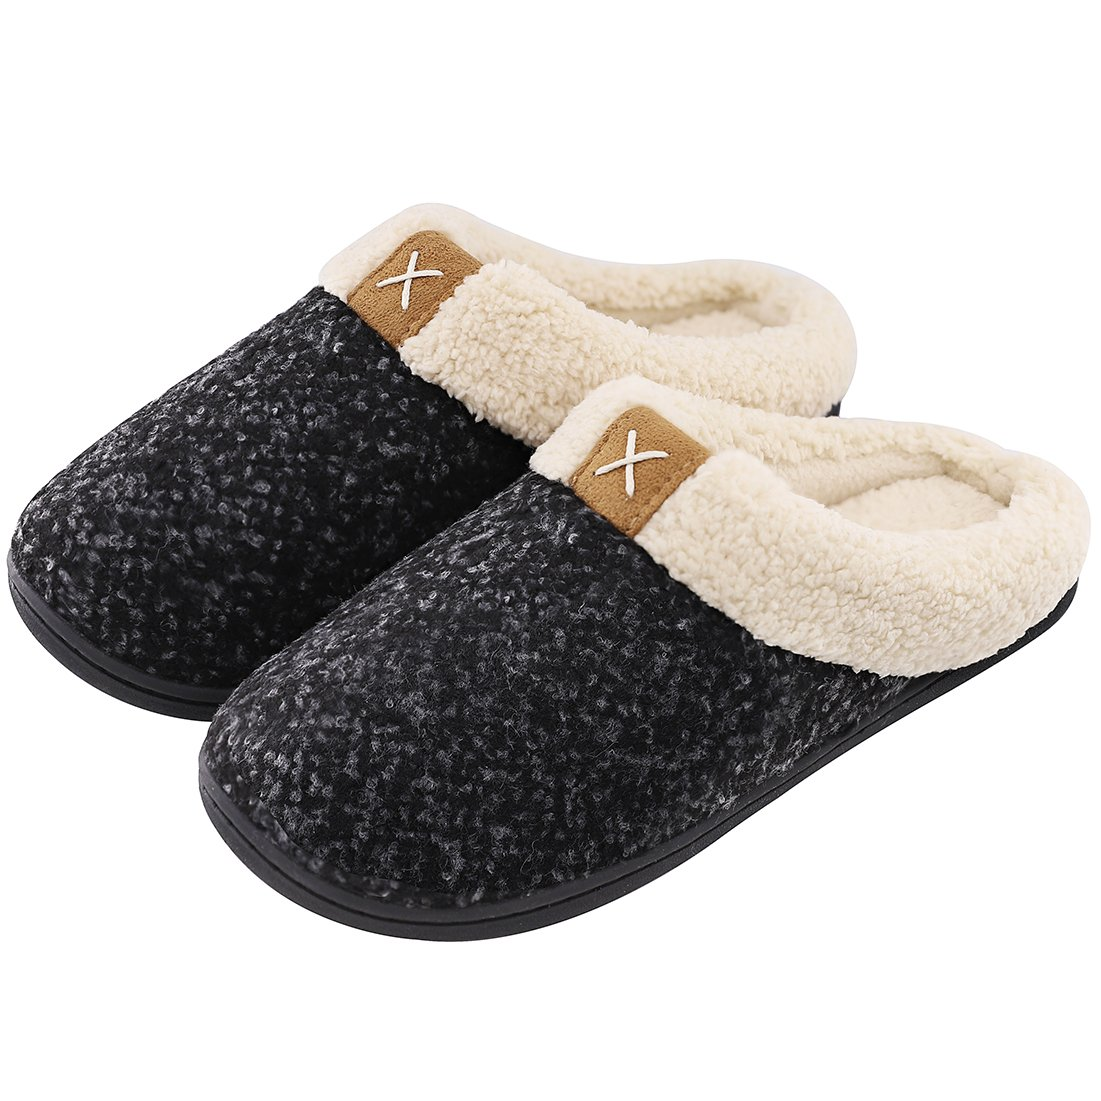 Women's Comfort Memory Foam Slippers Wool-Like Plush Fleece Lined House Shoes w/Indoor, Outdoor Anti-Skid Rubber Sole (Medium/7-8 B(M) US, Space Black)